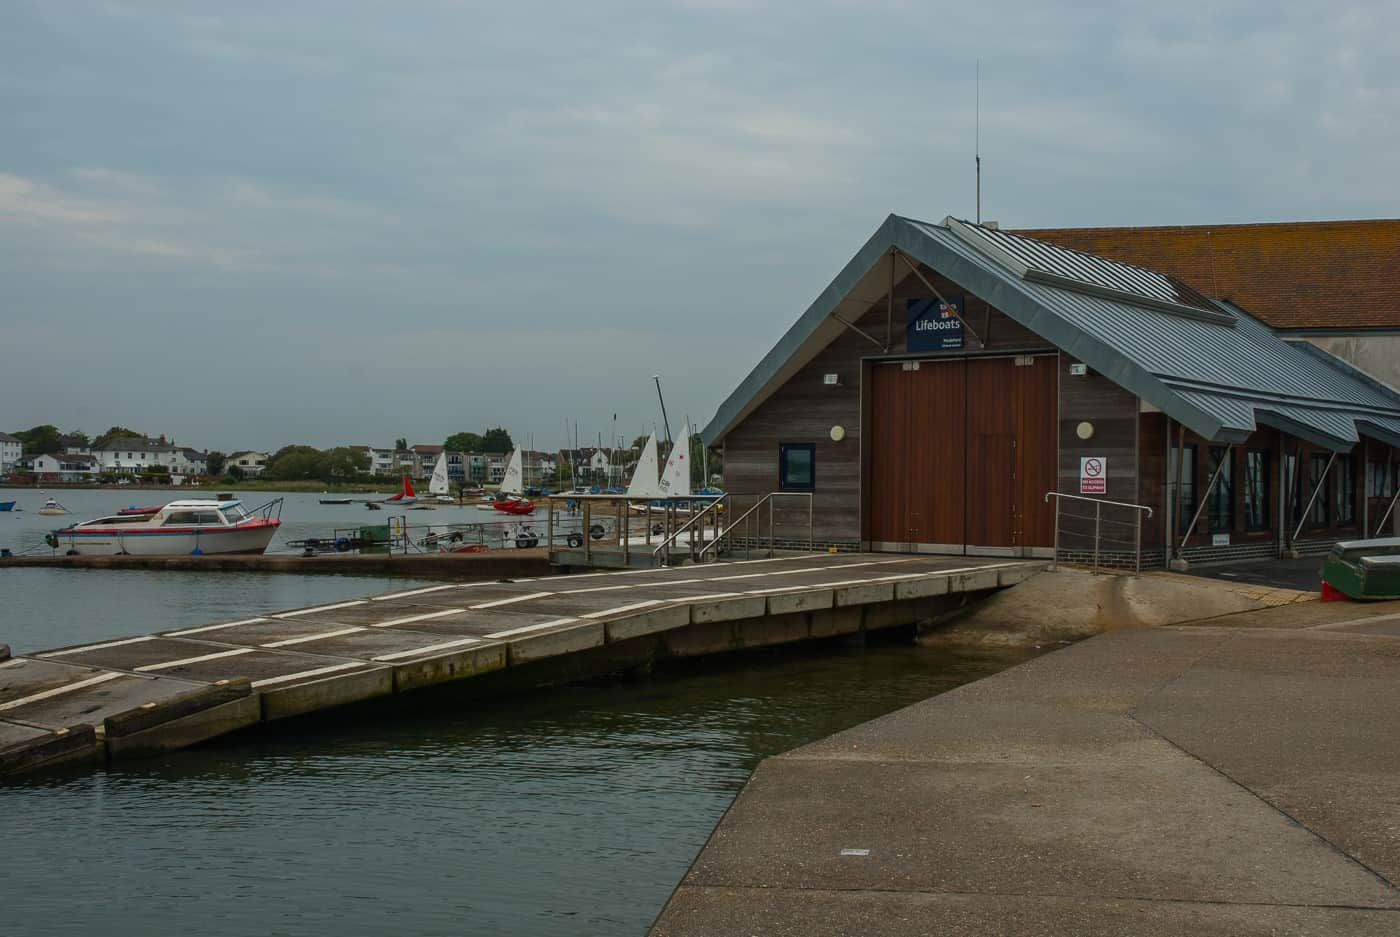 Mudeford lifeboat station, Mudeford Quay, Mudeford Christchurch Dorset